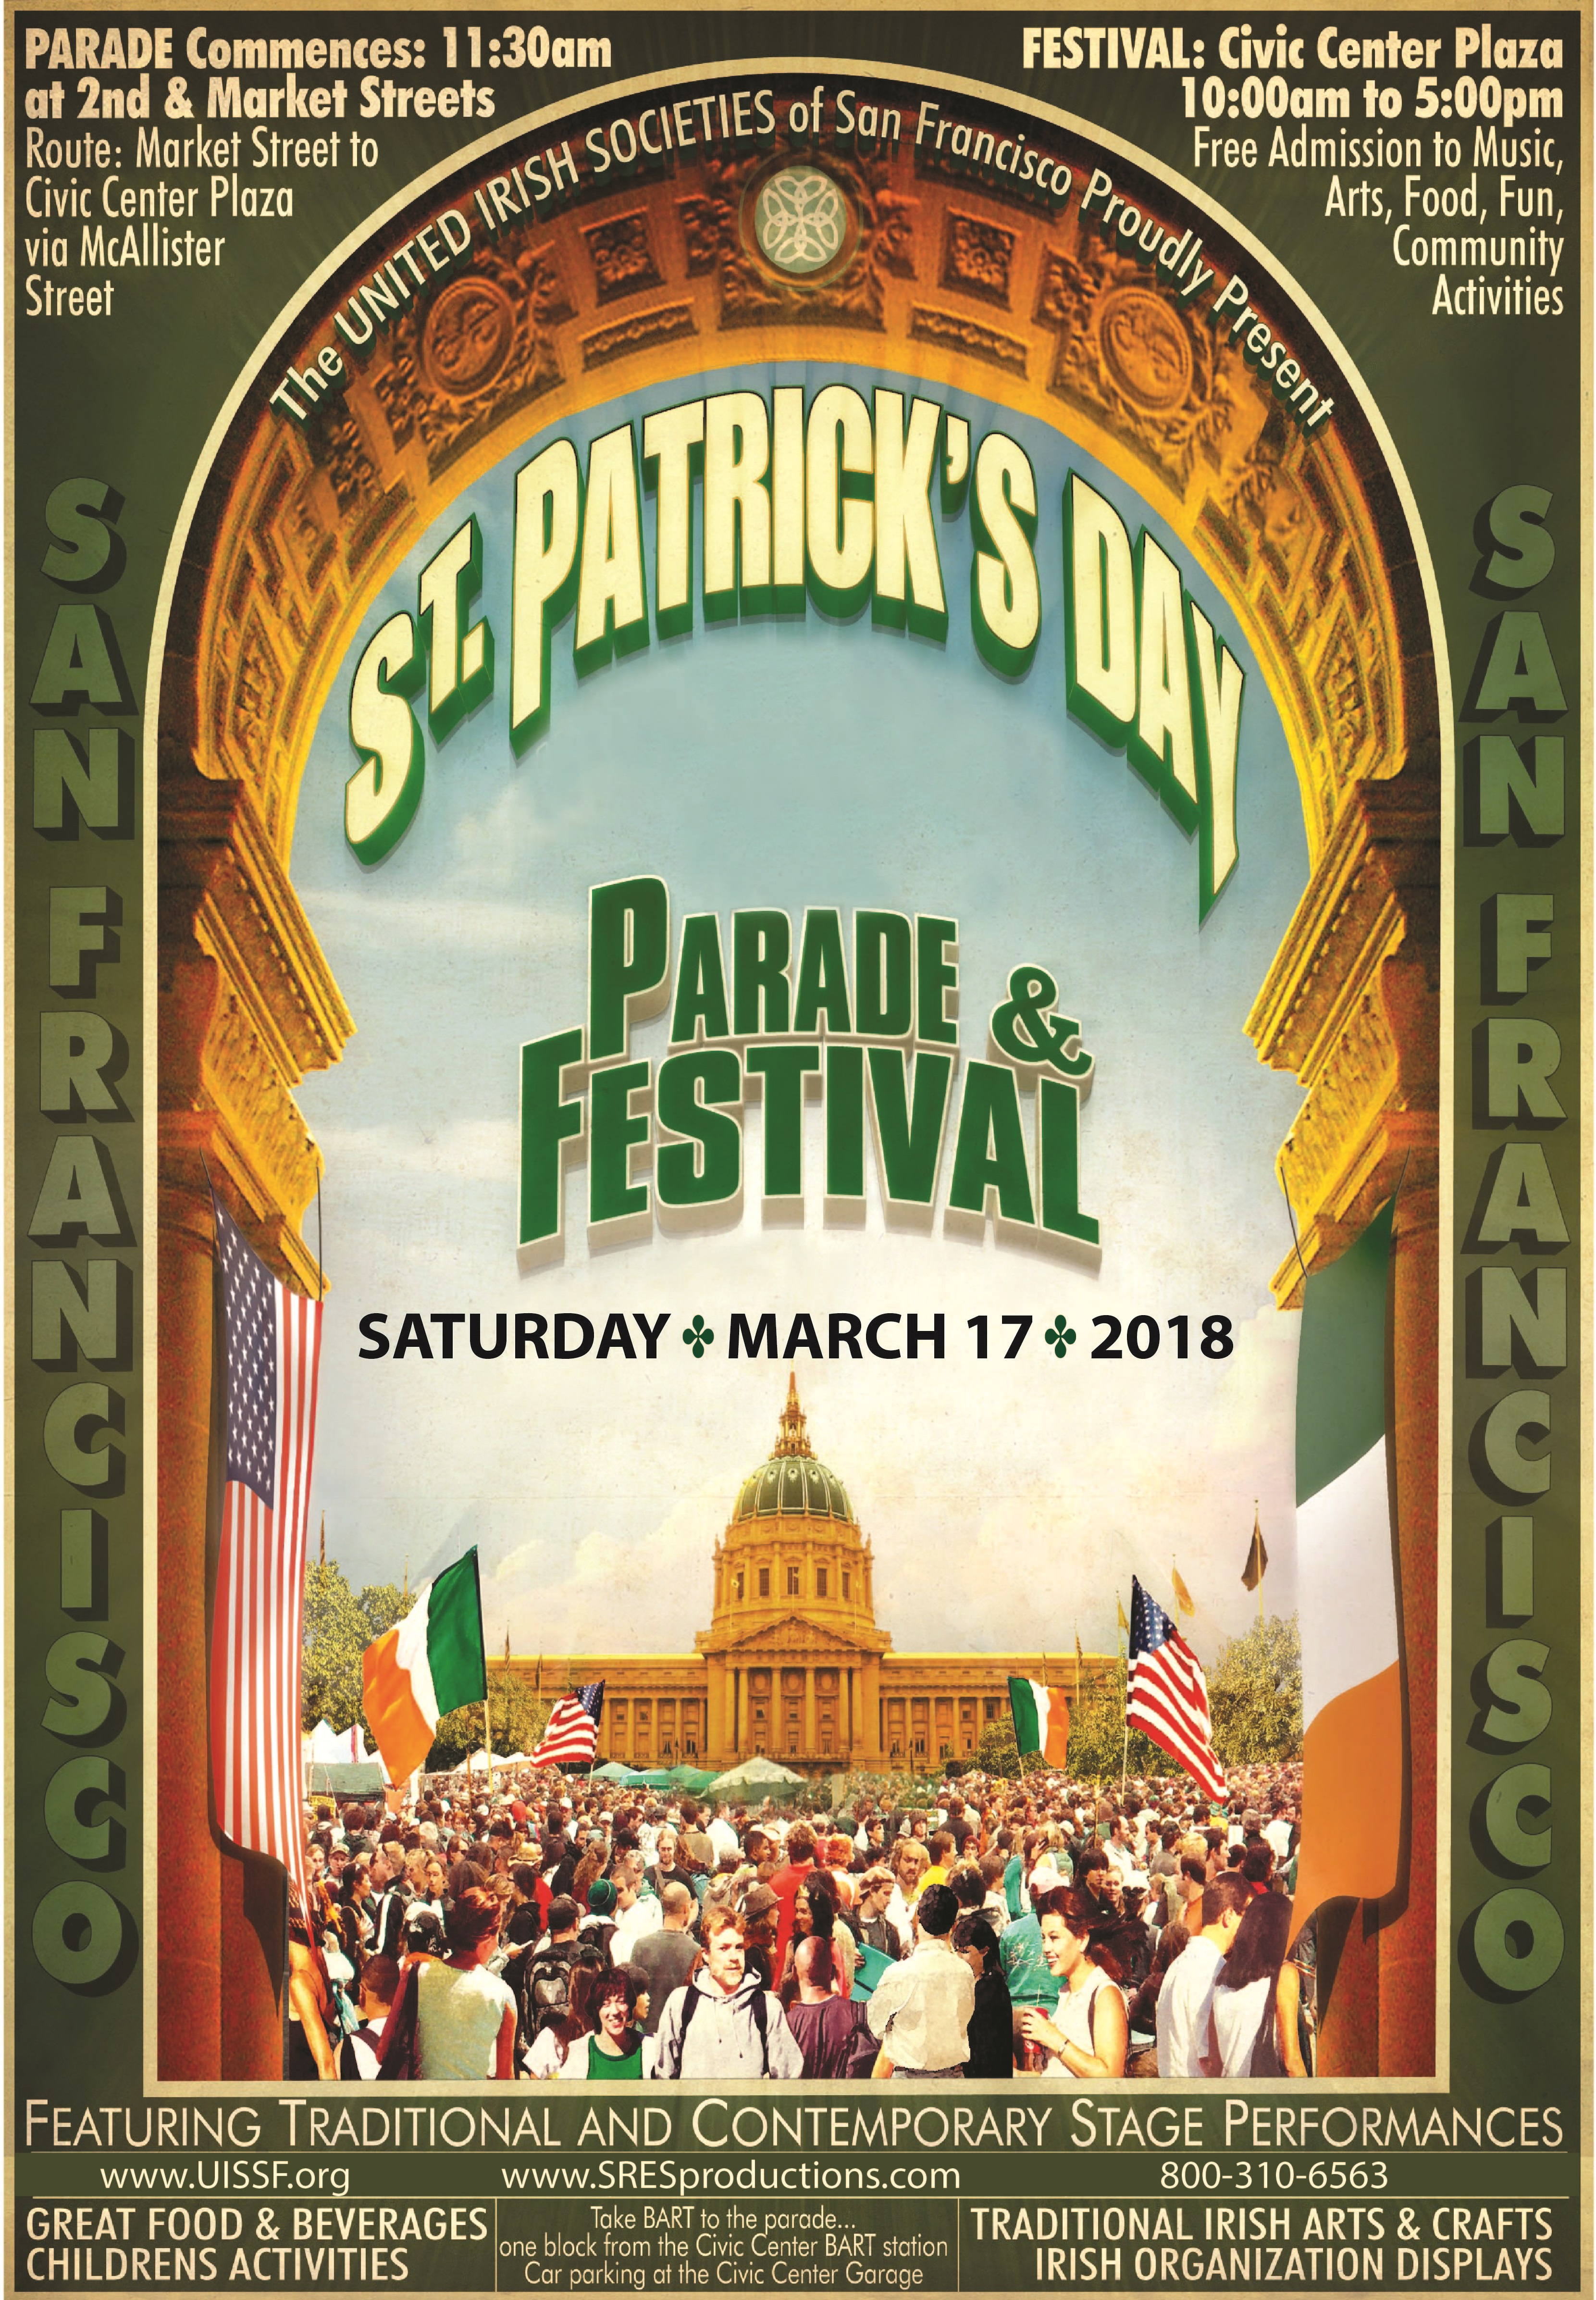 One of the favorite days of the Irish is March 17th